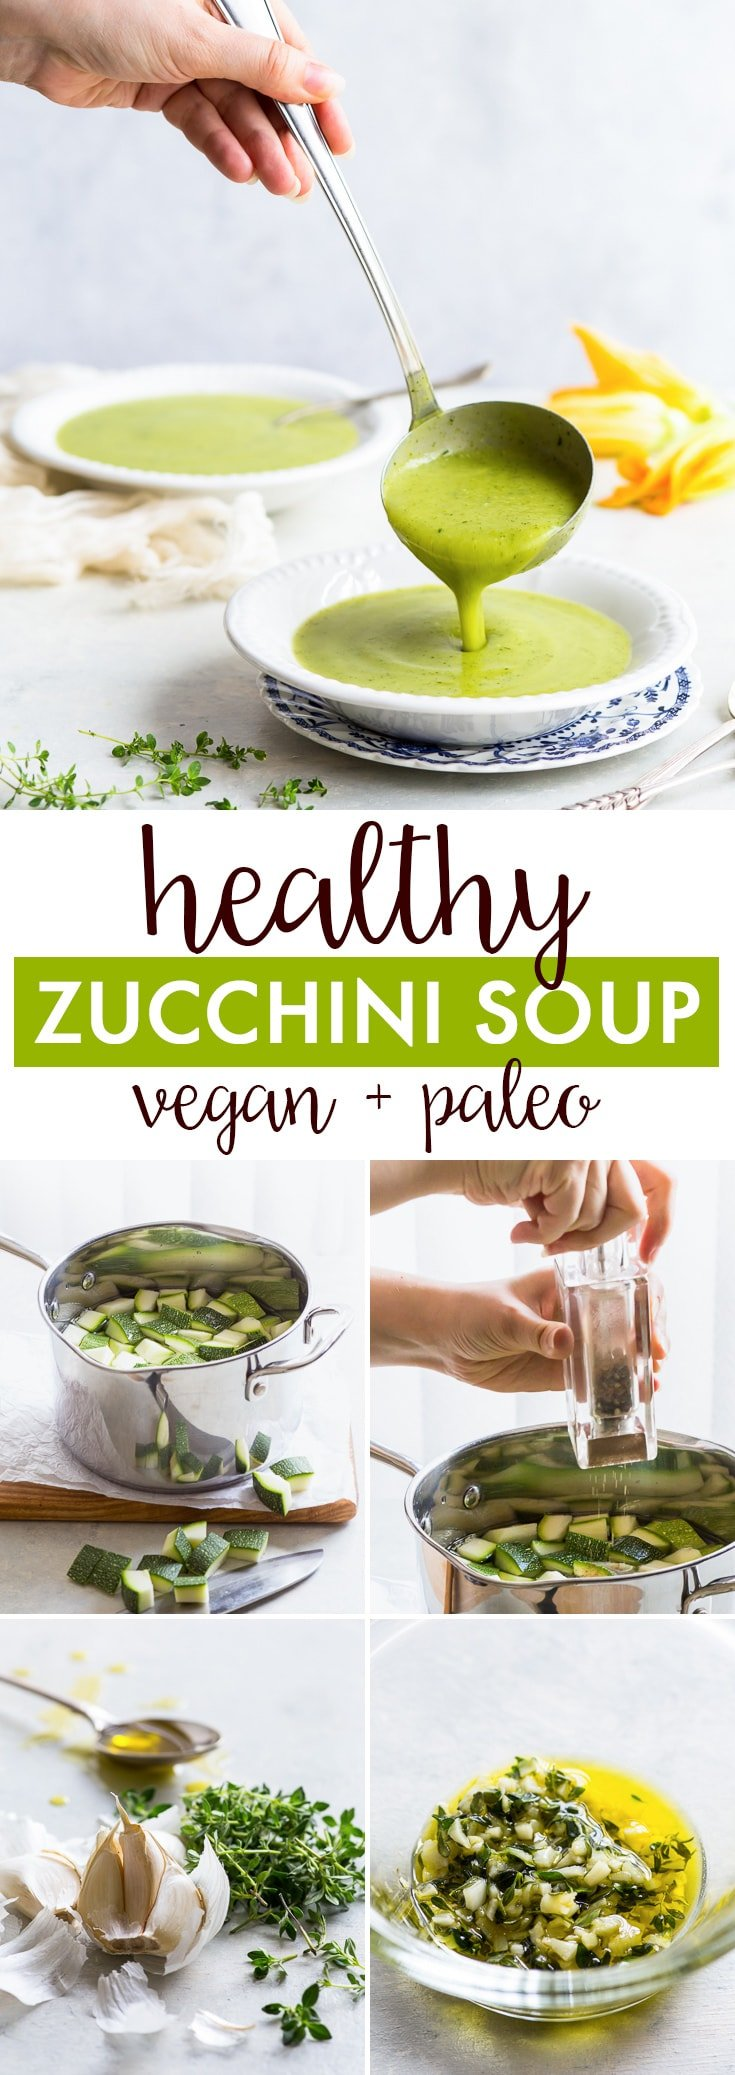 Healthy Cream of Zucchini Soup (Vegan + Paleo, Gluten + Dairy Free) - This delicious cream of zucchini soup is is healthy, super easy to make and the perfect quick summer lunch! And while this soup is both vegan and paleo, don't let that fool you – this healthy zucchini soup is filling and immensely satisfying. Zucchini recipes. Courgette recipes. Healthy soup. Healthy lunch ideas. Easy soup recipes. Vegan lunch ideas. Paleo lunch ideas. Vegan soup. #vegan #paleo #healthyrecipes #zucchini